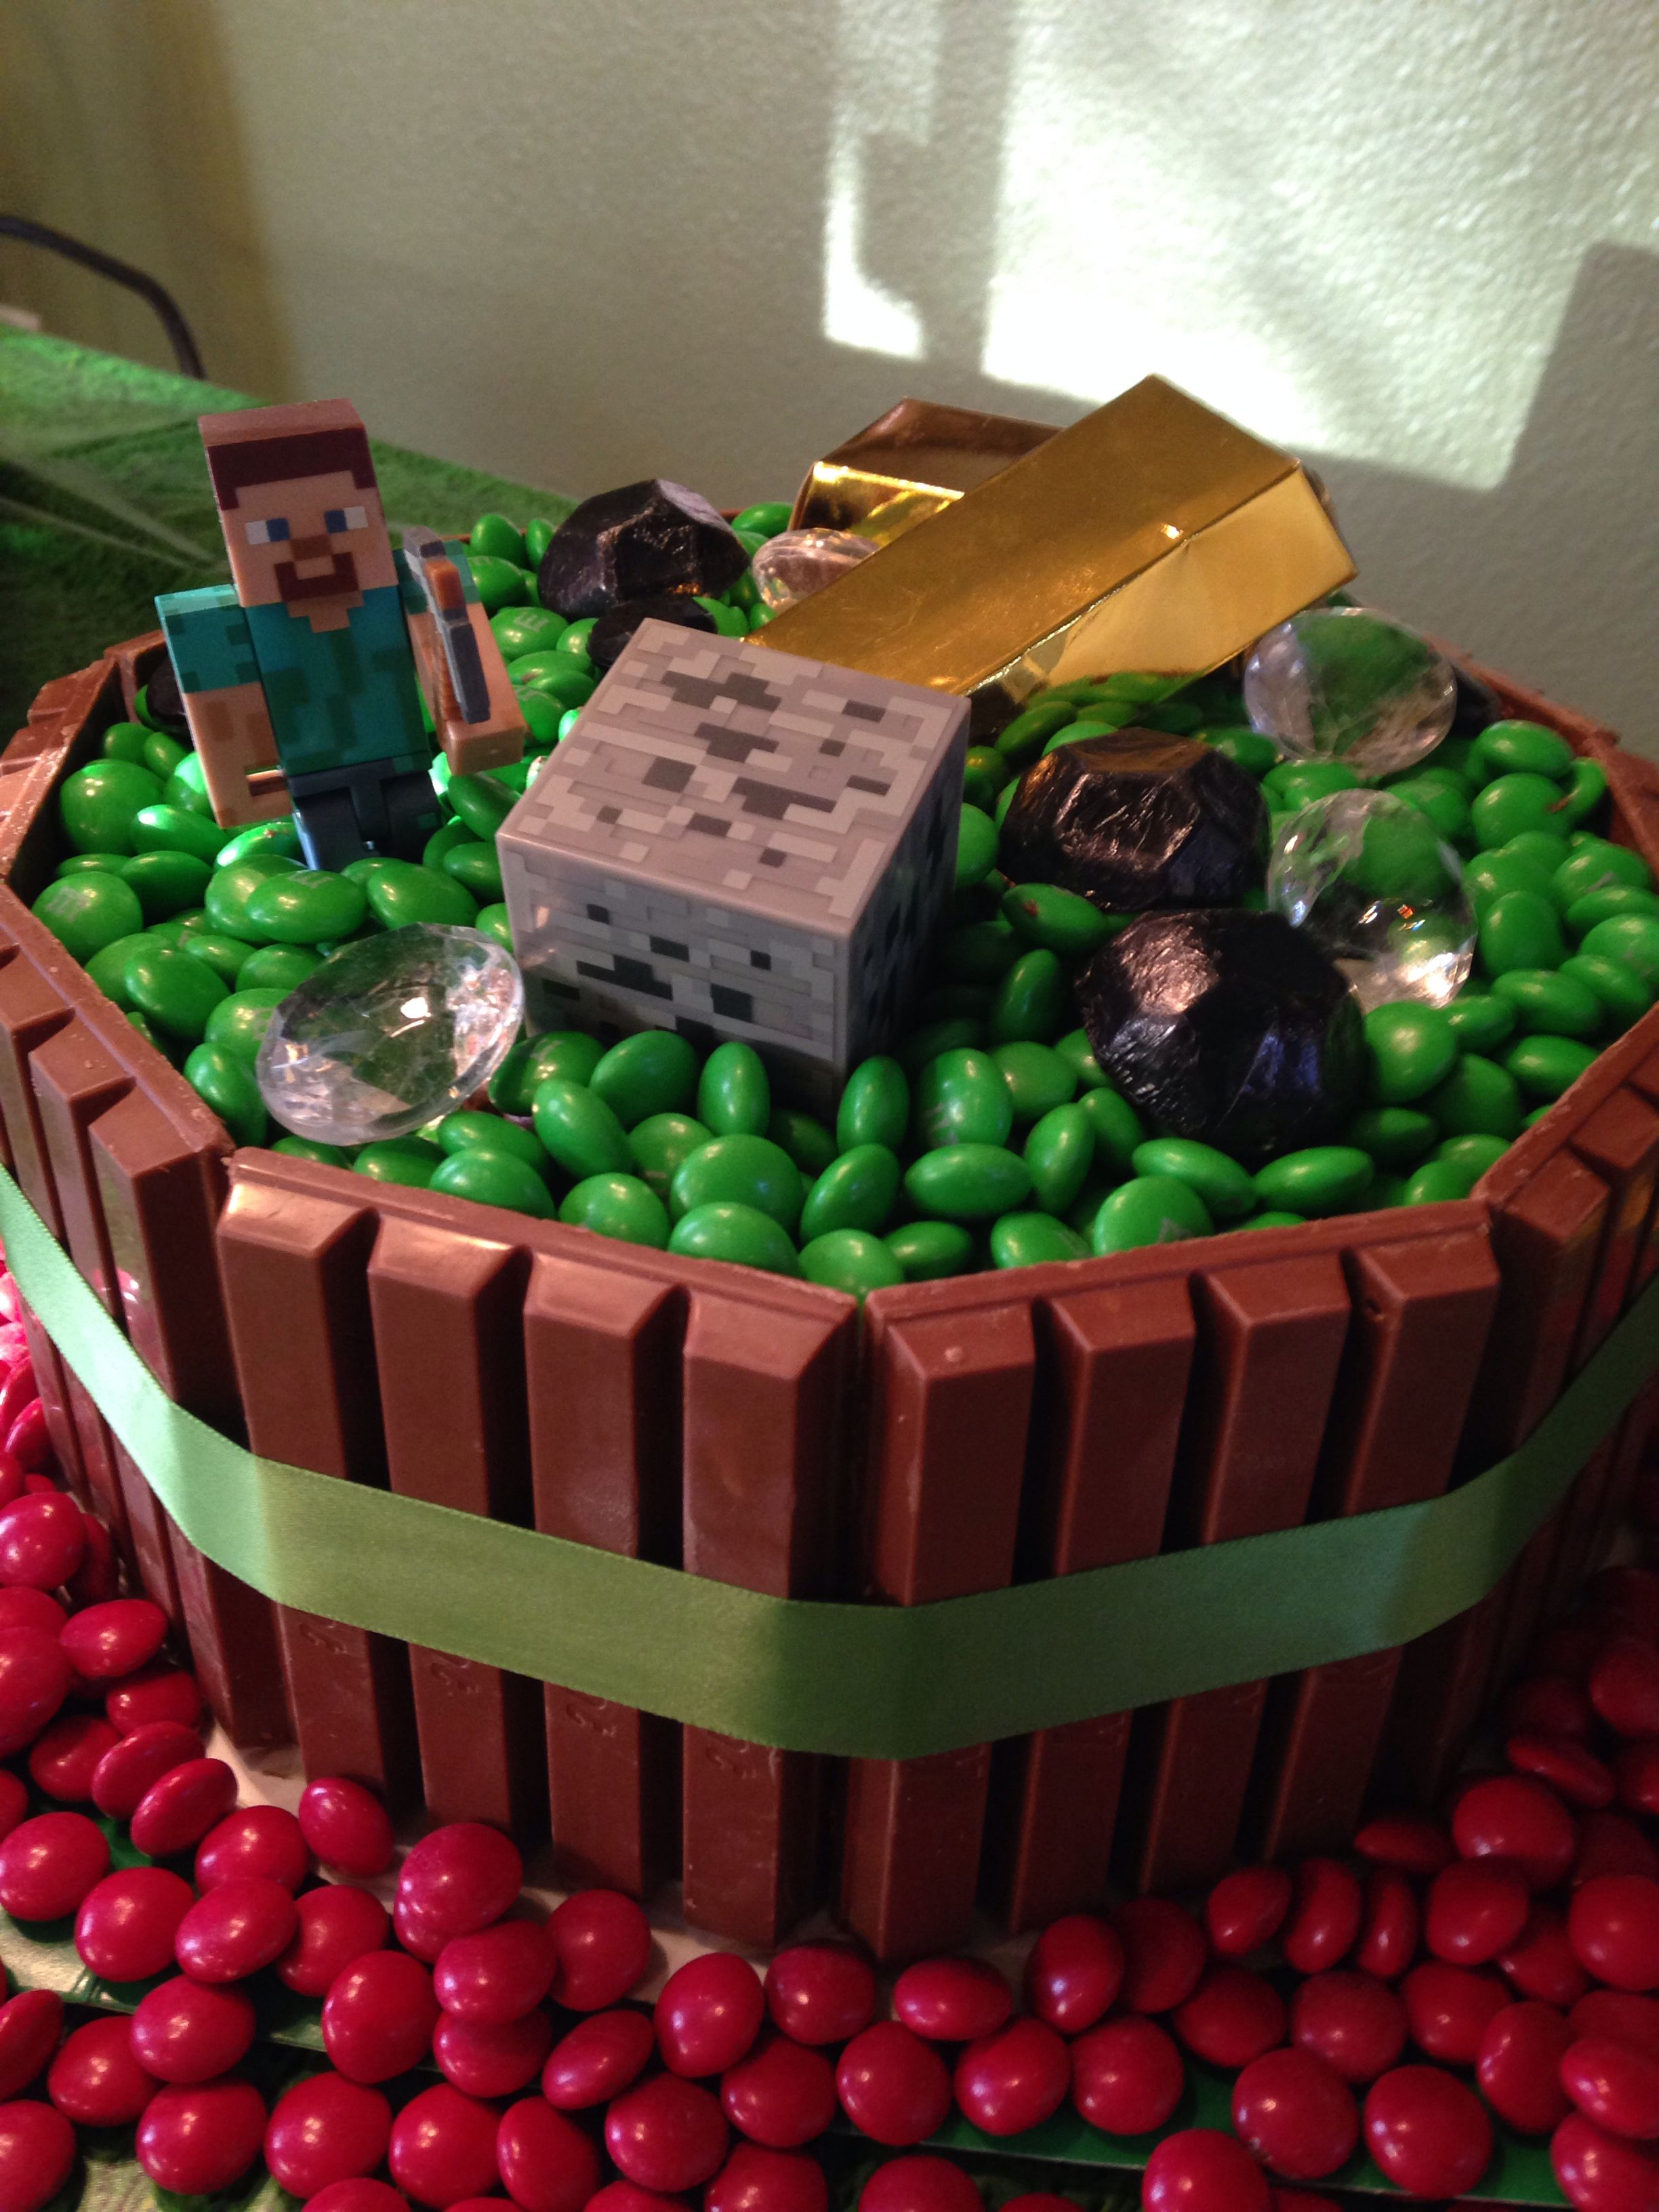 Minecraft Cake The Kit Kat And M M Cake As Seen On Pinterest